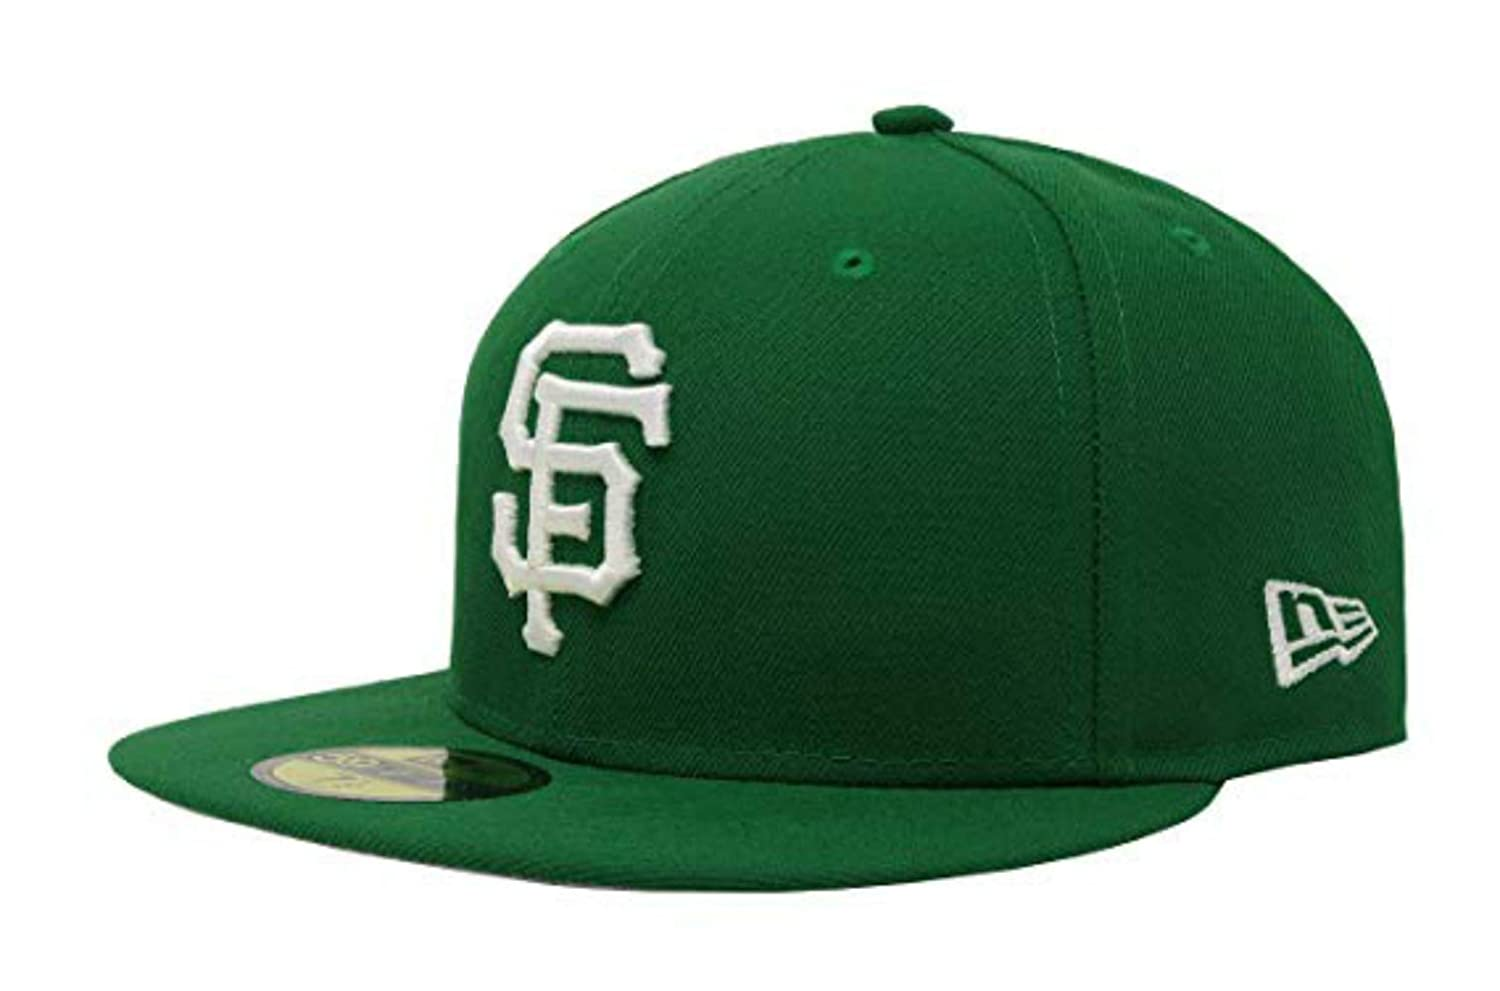 aa320a91df1b0 Amazon.com   San Francisco Giants Fitted Size 7 Hat Cap - Green   Sports    Outdoors